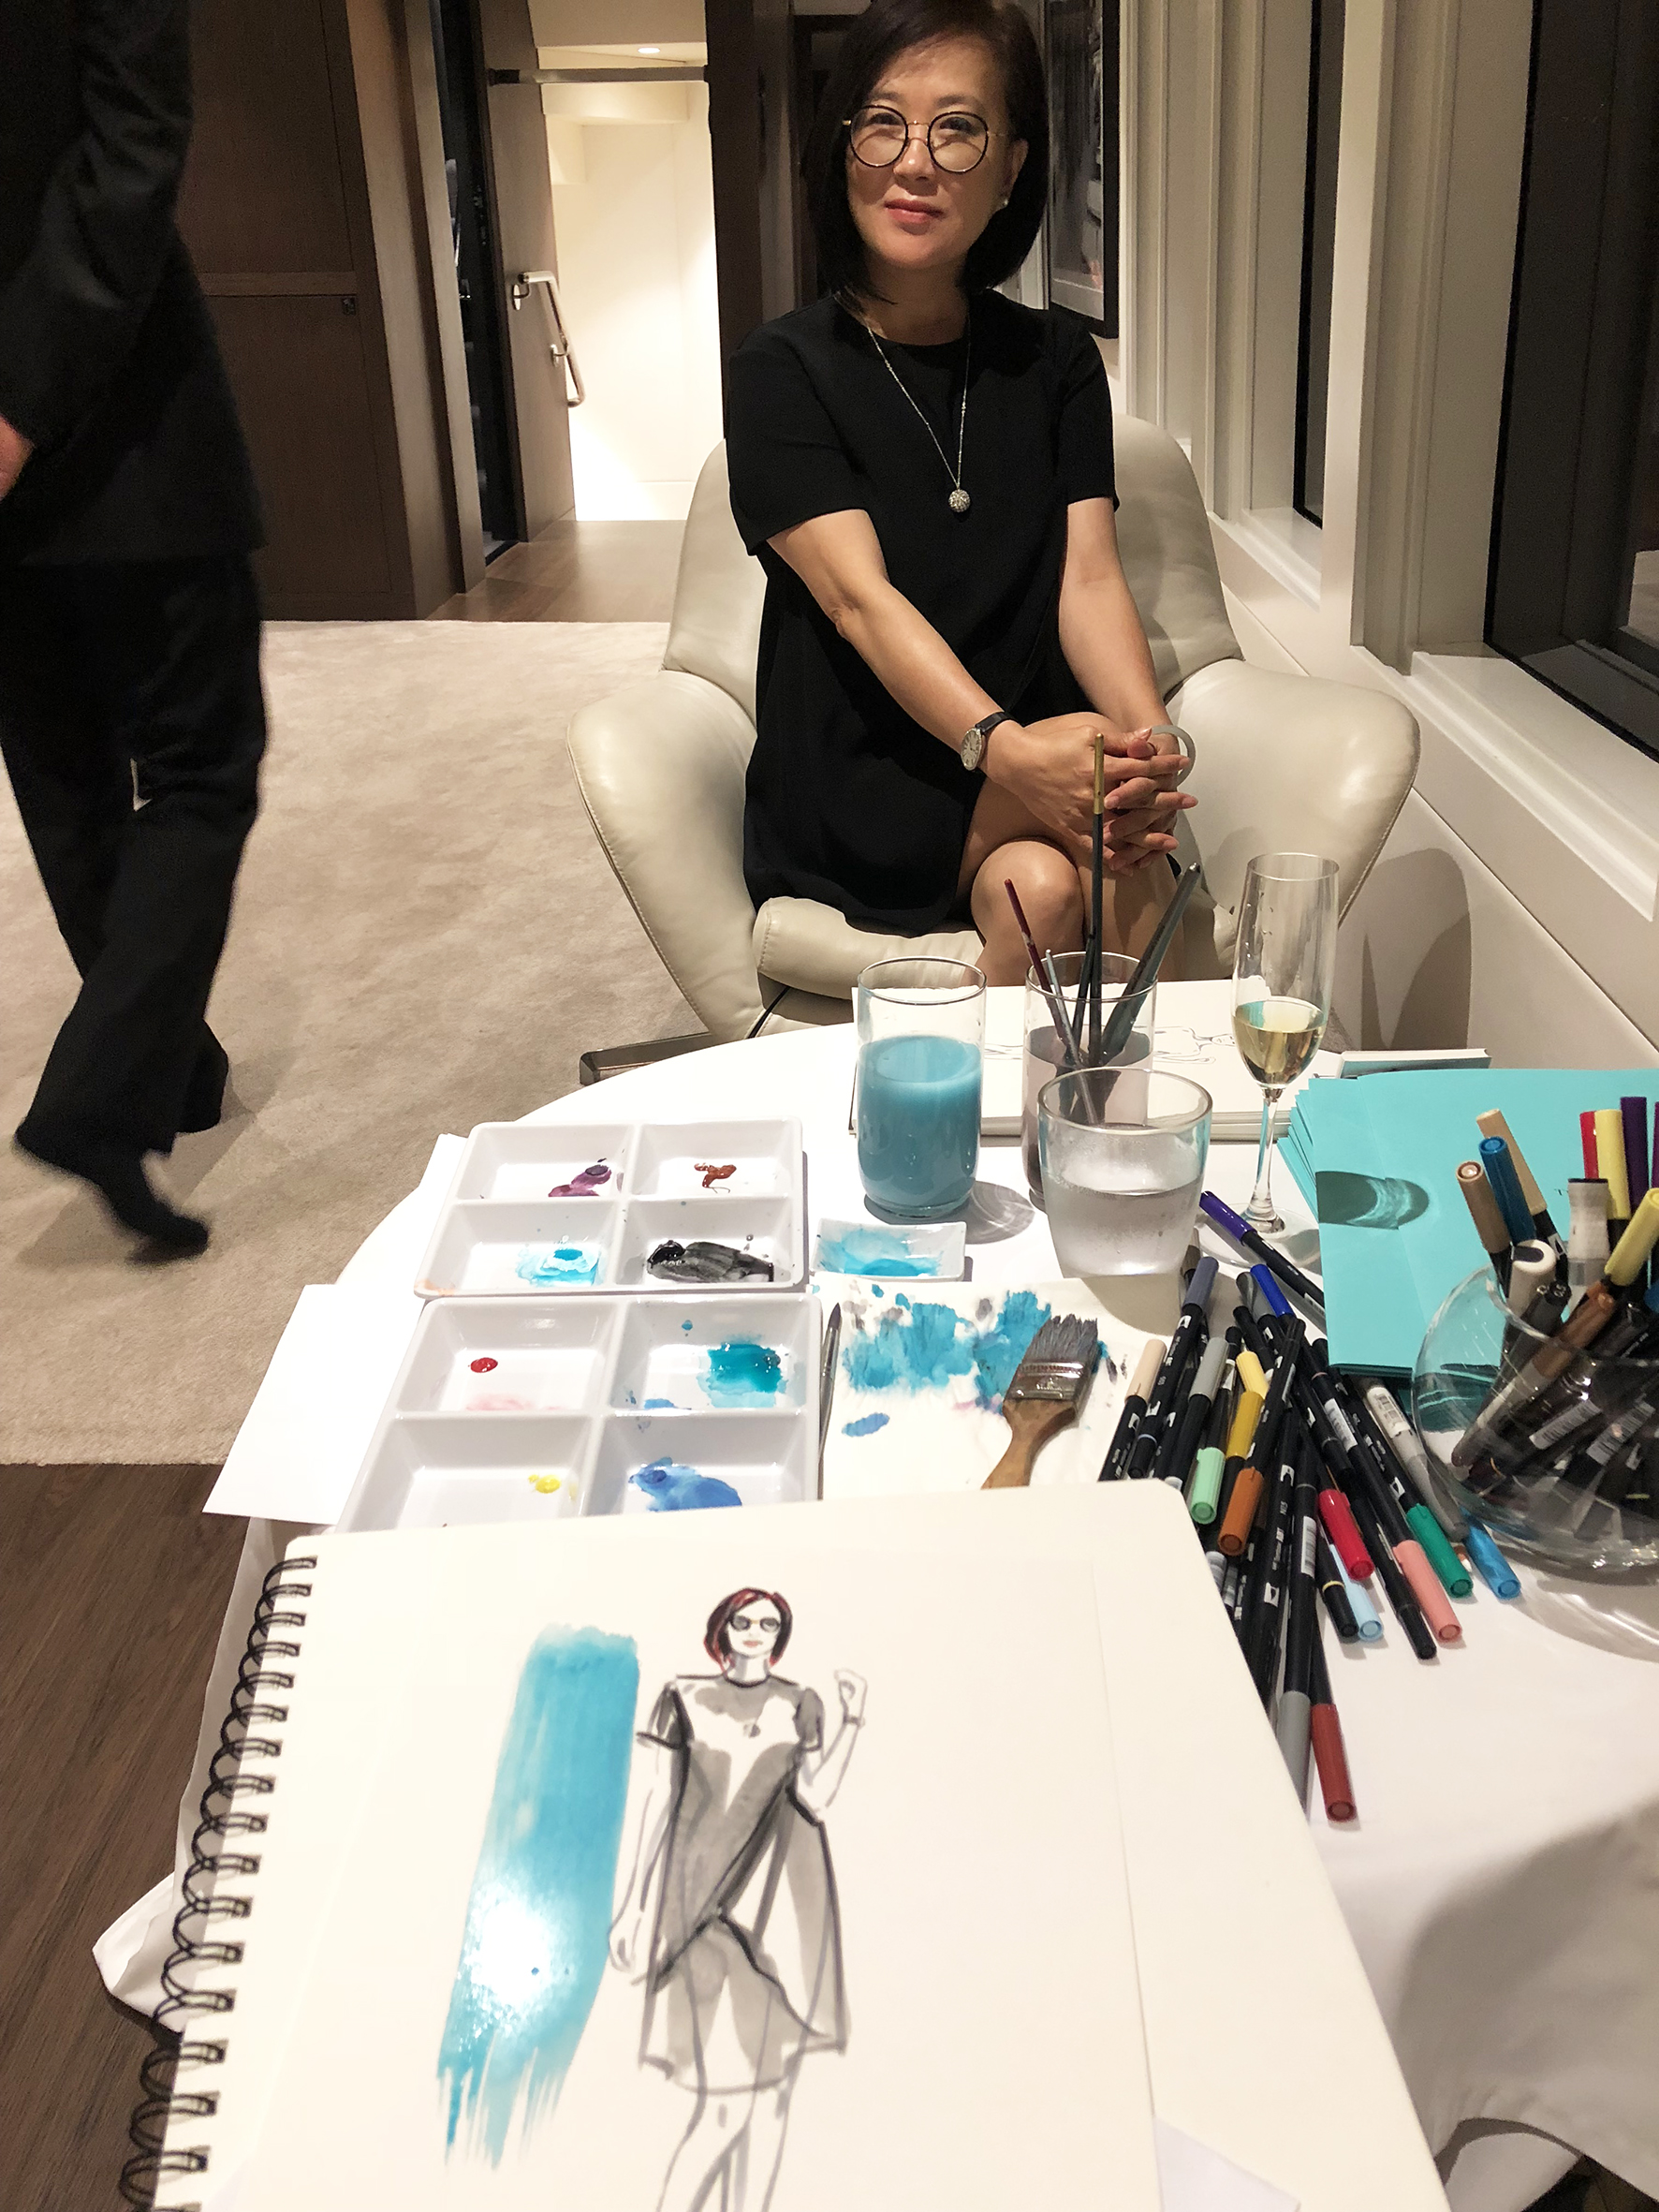 Erin Whitty live drawing art table